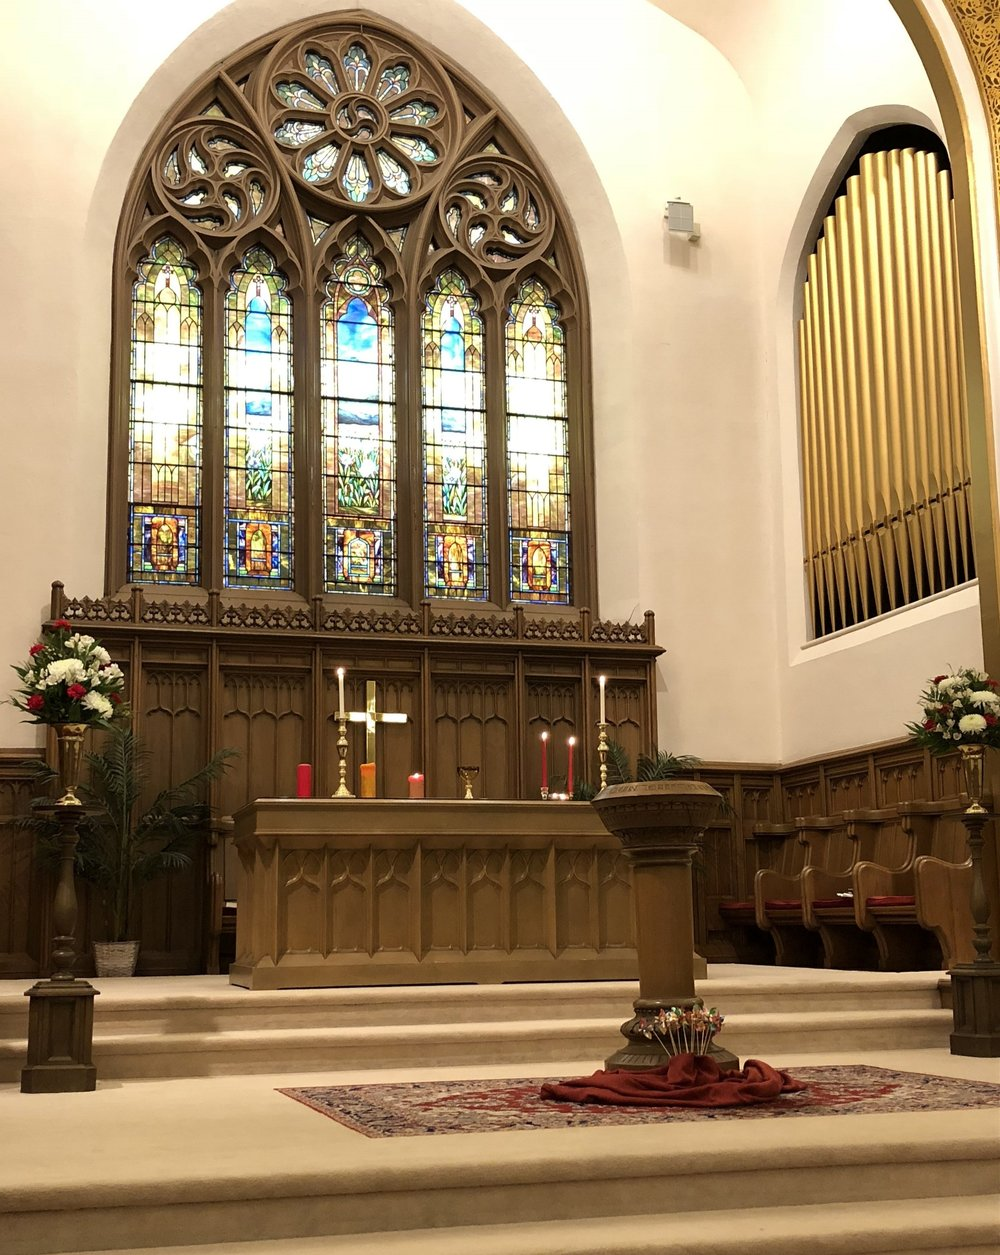 Sunday Service - Our 10:30 AM traditional service is approximately 60 minutes, followed by a coffee hour in Legacy Hall.We are a warm and welcoming body of believers, so Passing of the Peace is a joyful occasion. Our worship follows the Order of Worship from the Book of Common Worship of the Presbyterian Church (U.S.A.). We give you a user-friendly printed outline of the service each week to walk you through every step.